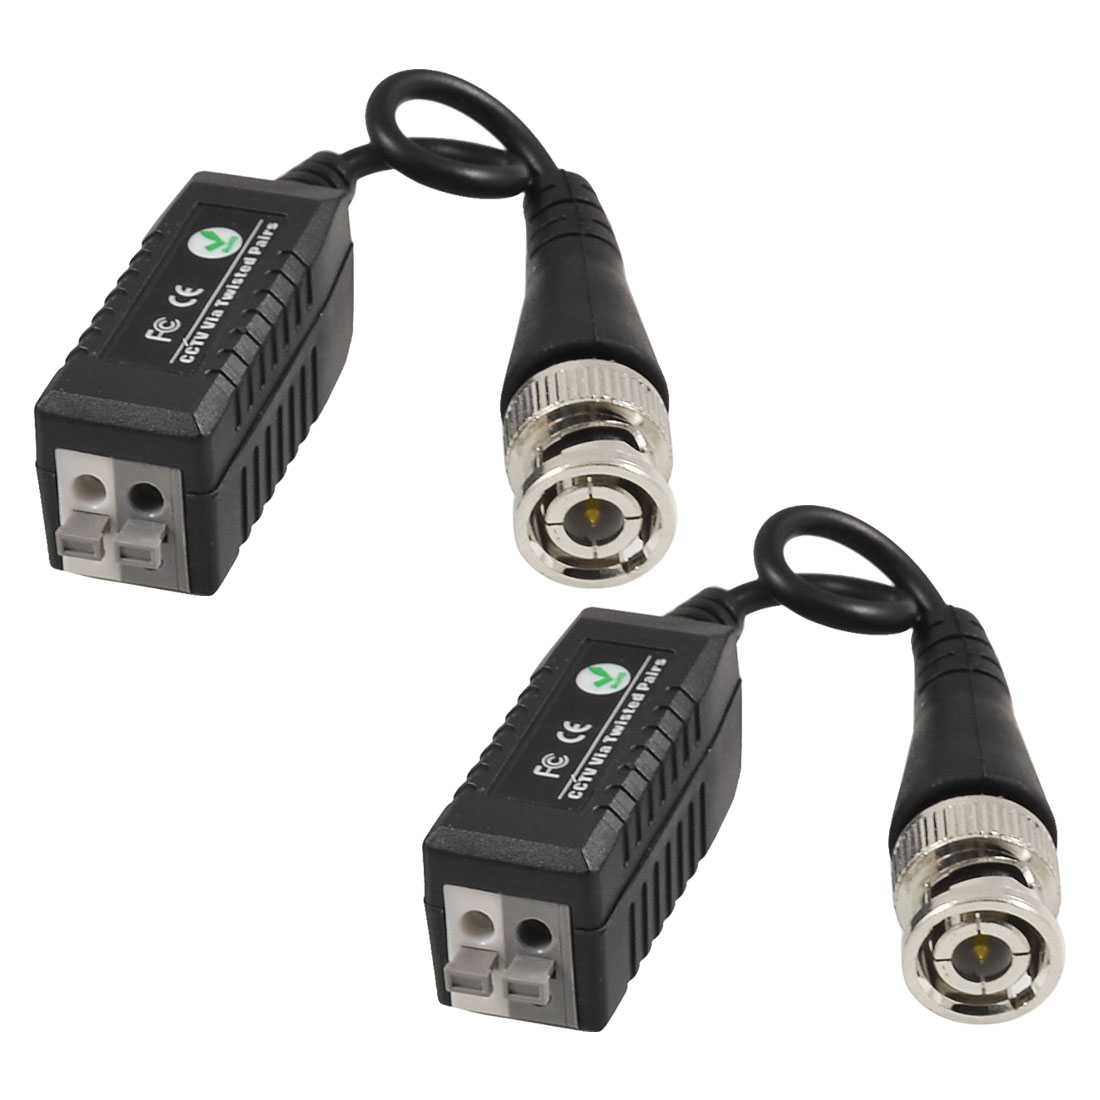 Single Channel CCTV Via Twisted Pairs UTP Passive Video Balun Transceiver